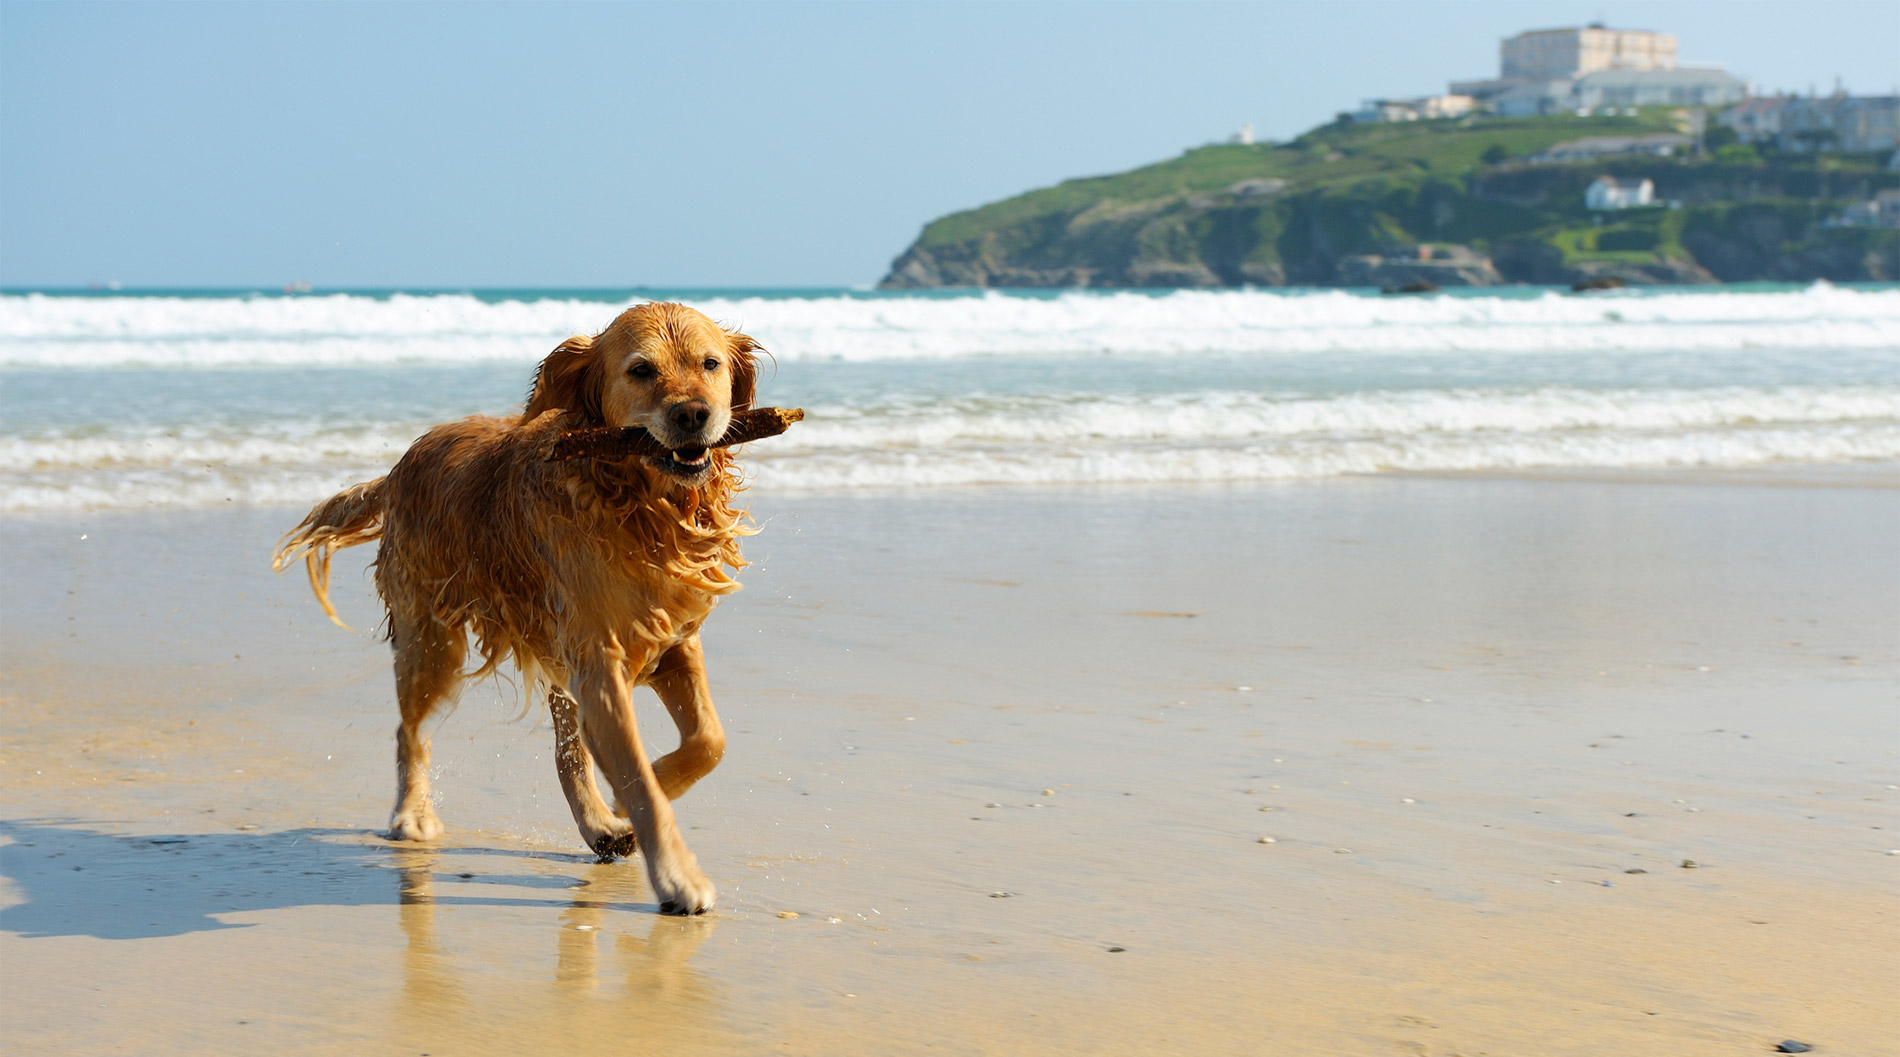 A young golden retriever with a piece of wood in his mouth running on the beach. Location: Newquay, Cornwall, UK.